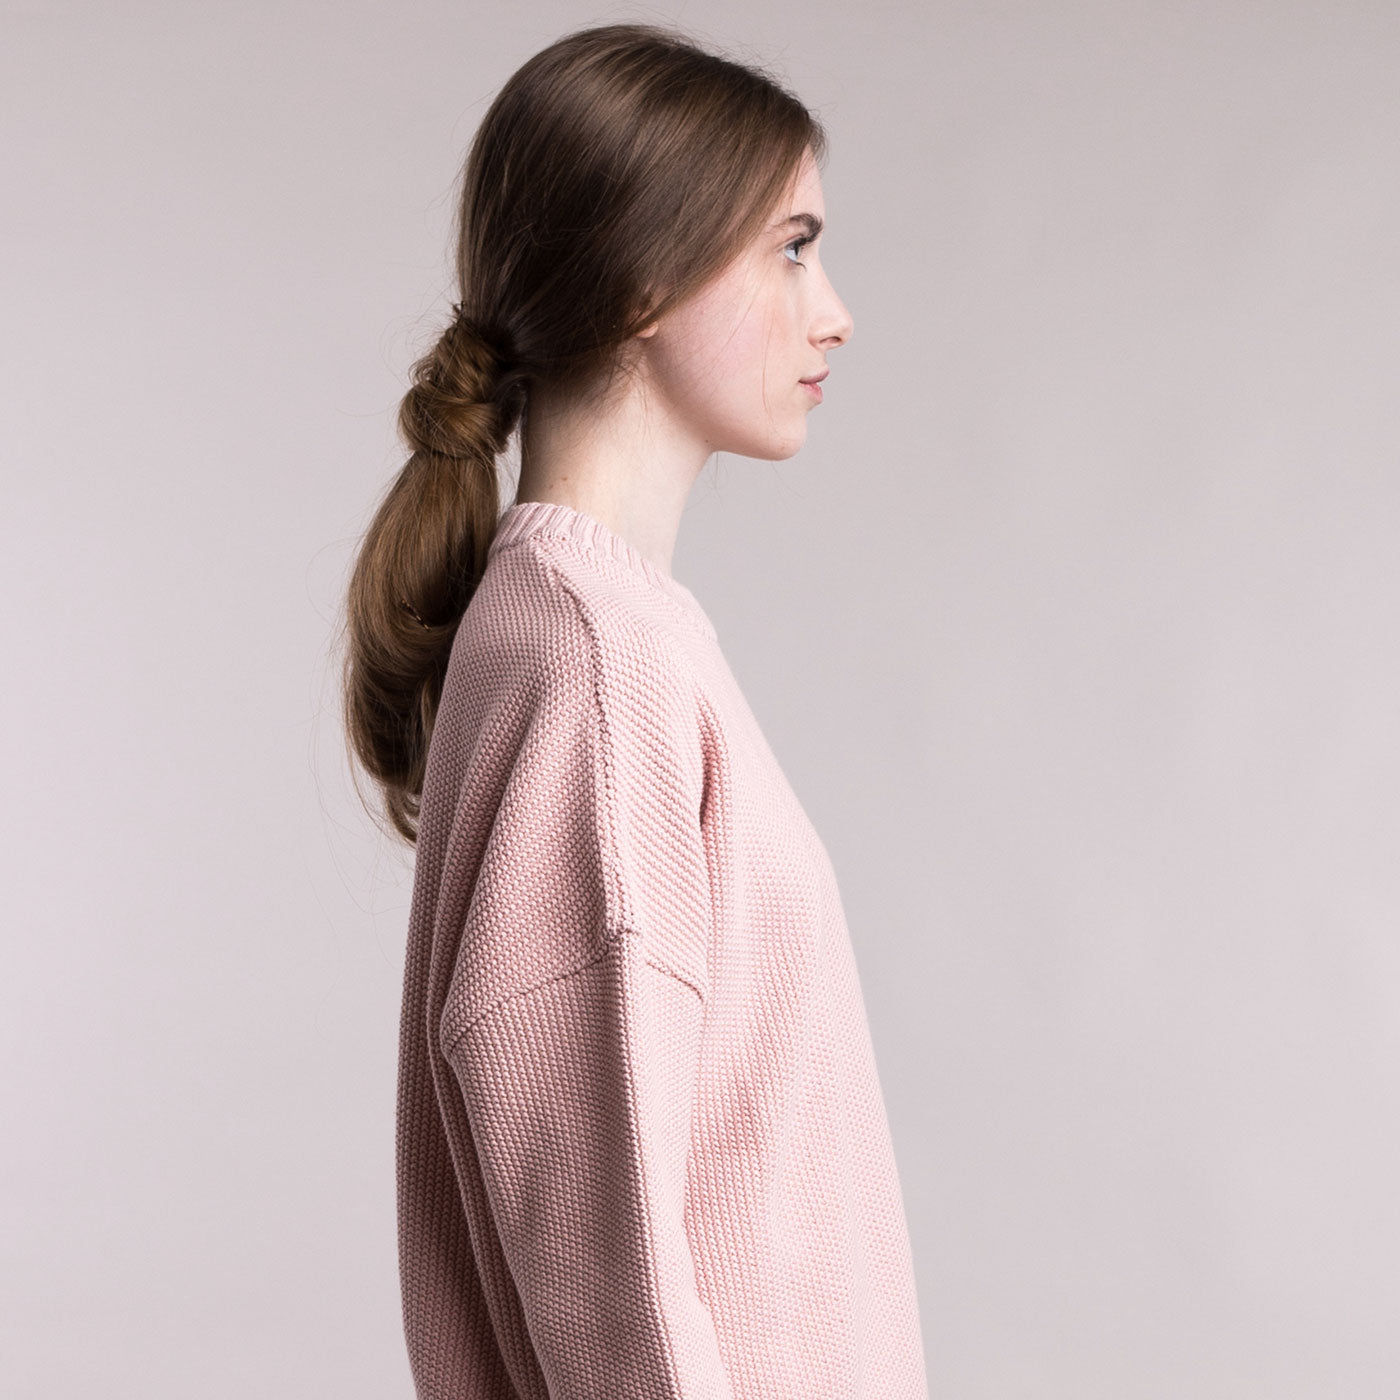 The model wears a dusty pink sustainable organic cotton knitted fine rice pullover, side view.